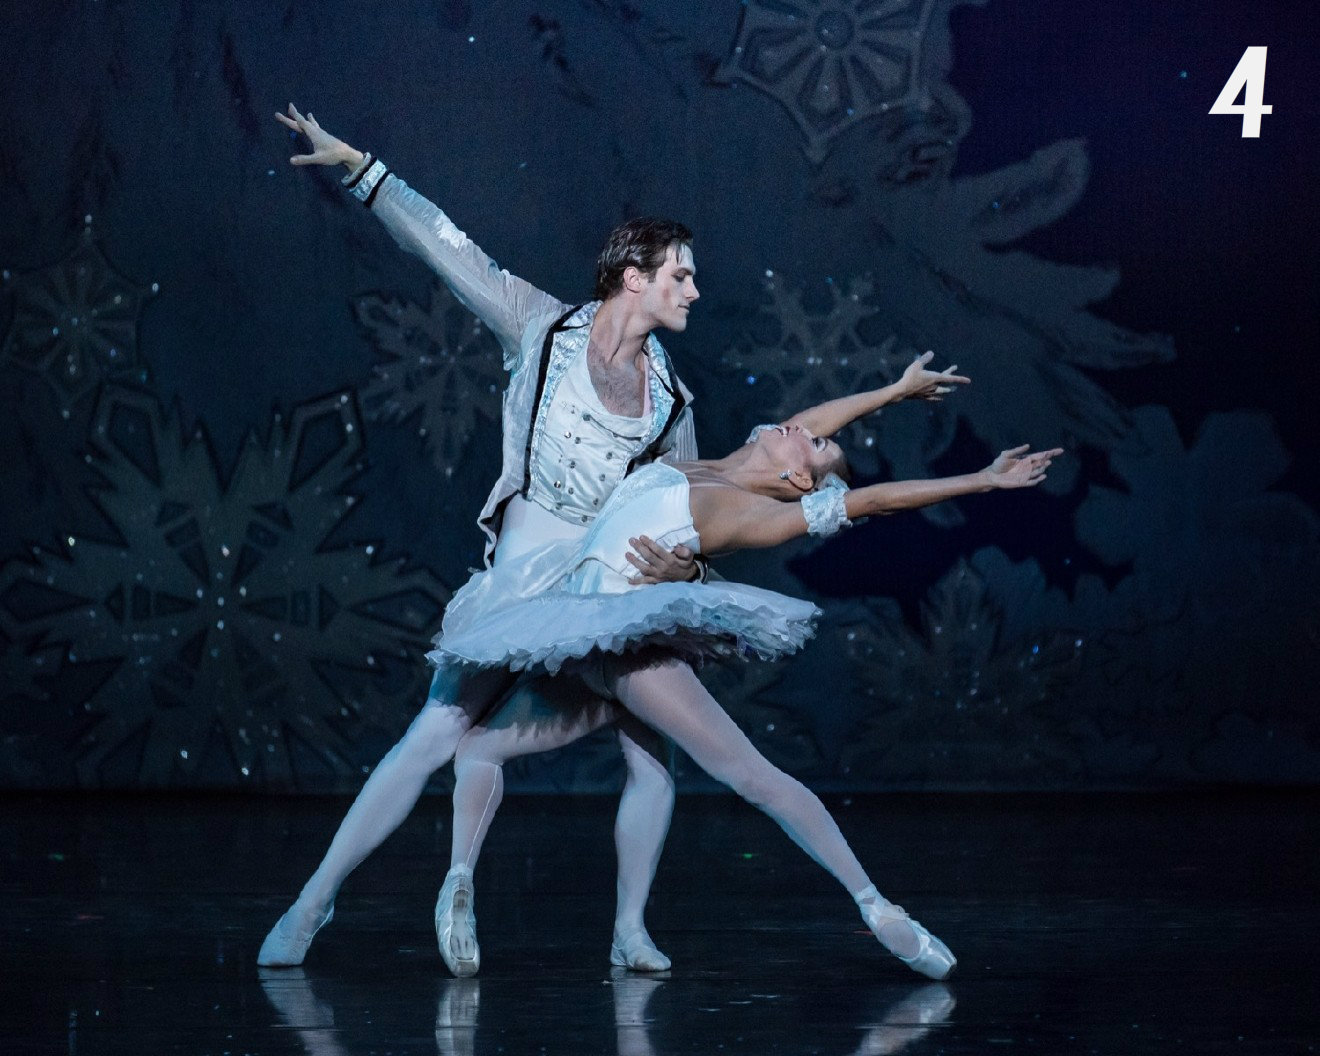 #4 - Cincinnati Ballet opens The Nutcracker this weekend, with performances running Dec. 9 -18 at the Aronoff Center. / Image: Peter Mueller